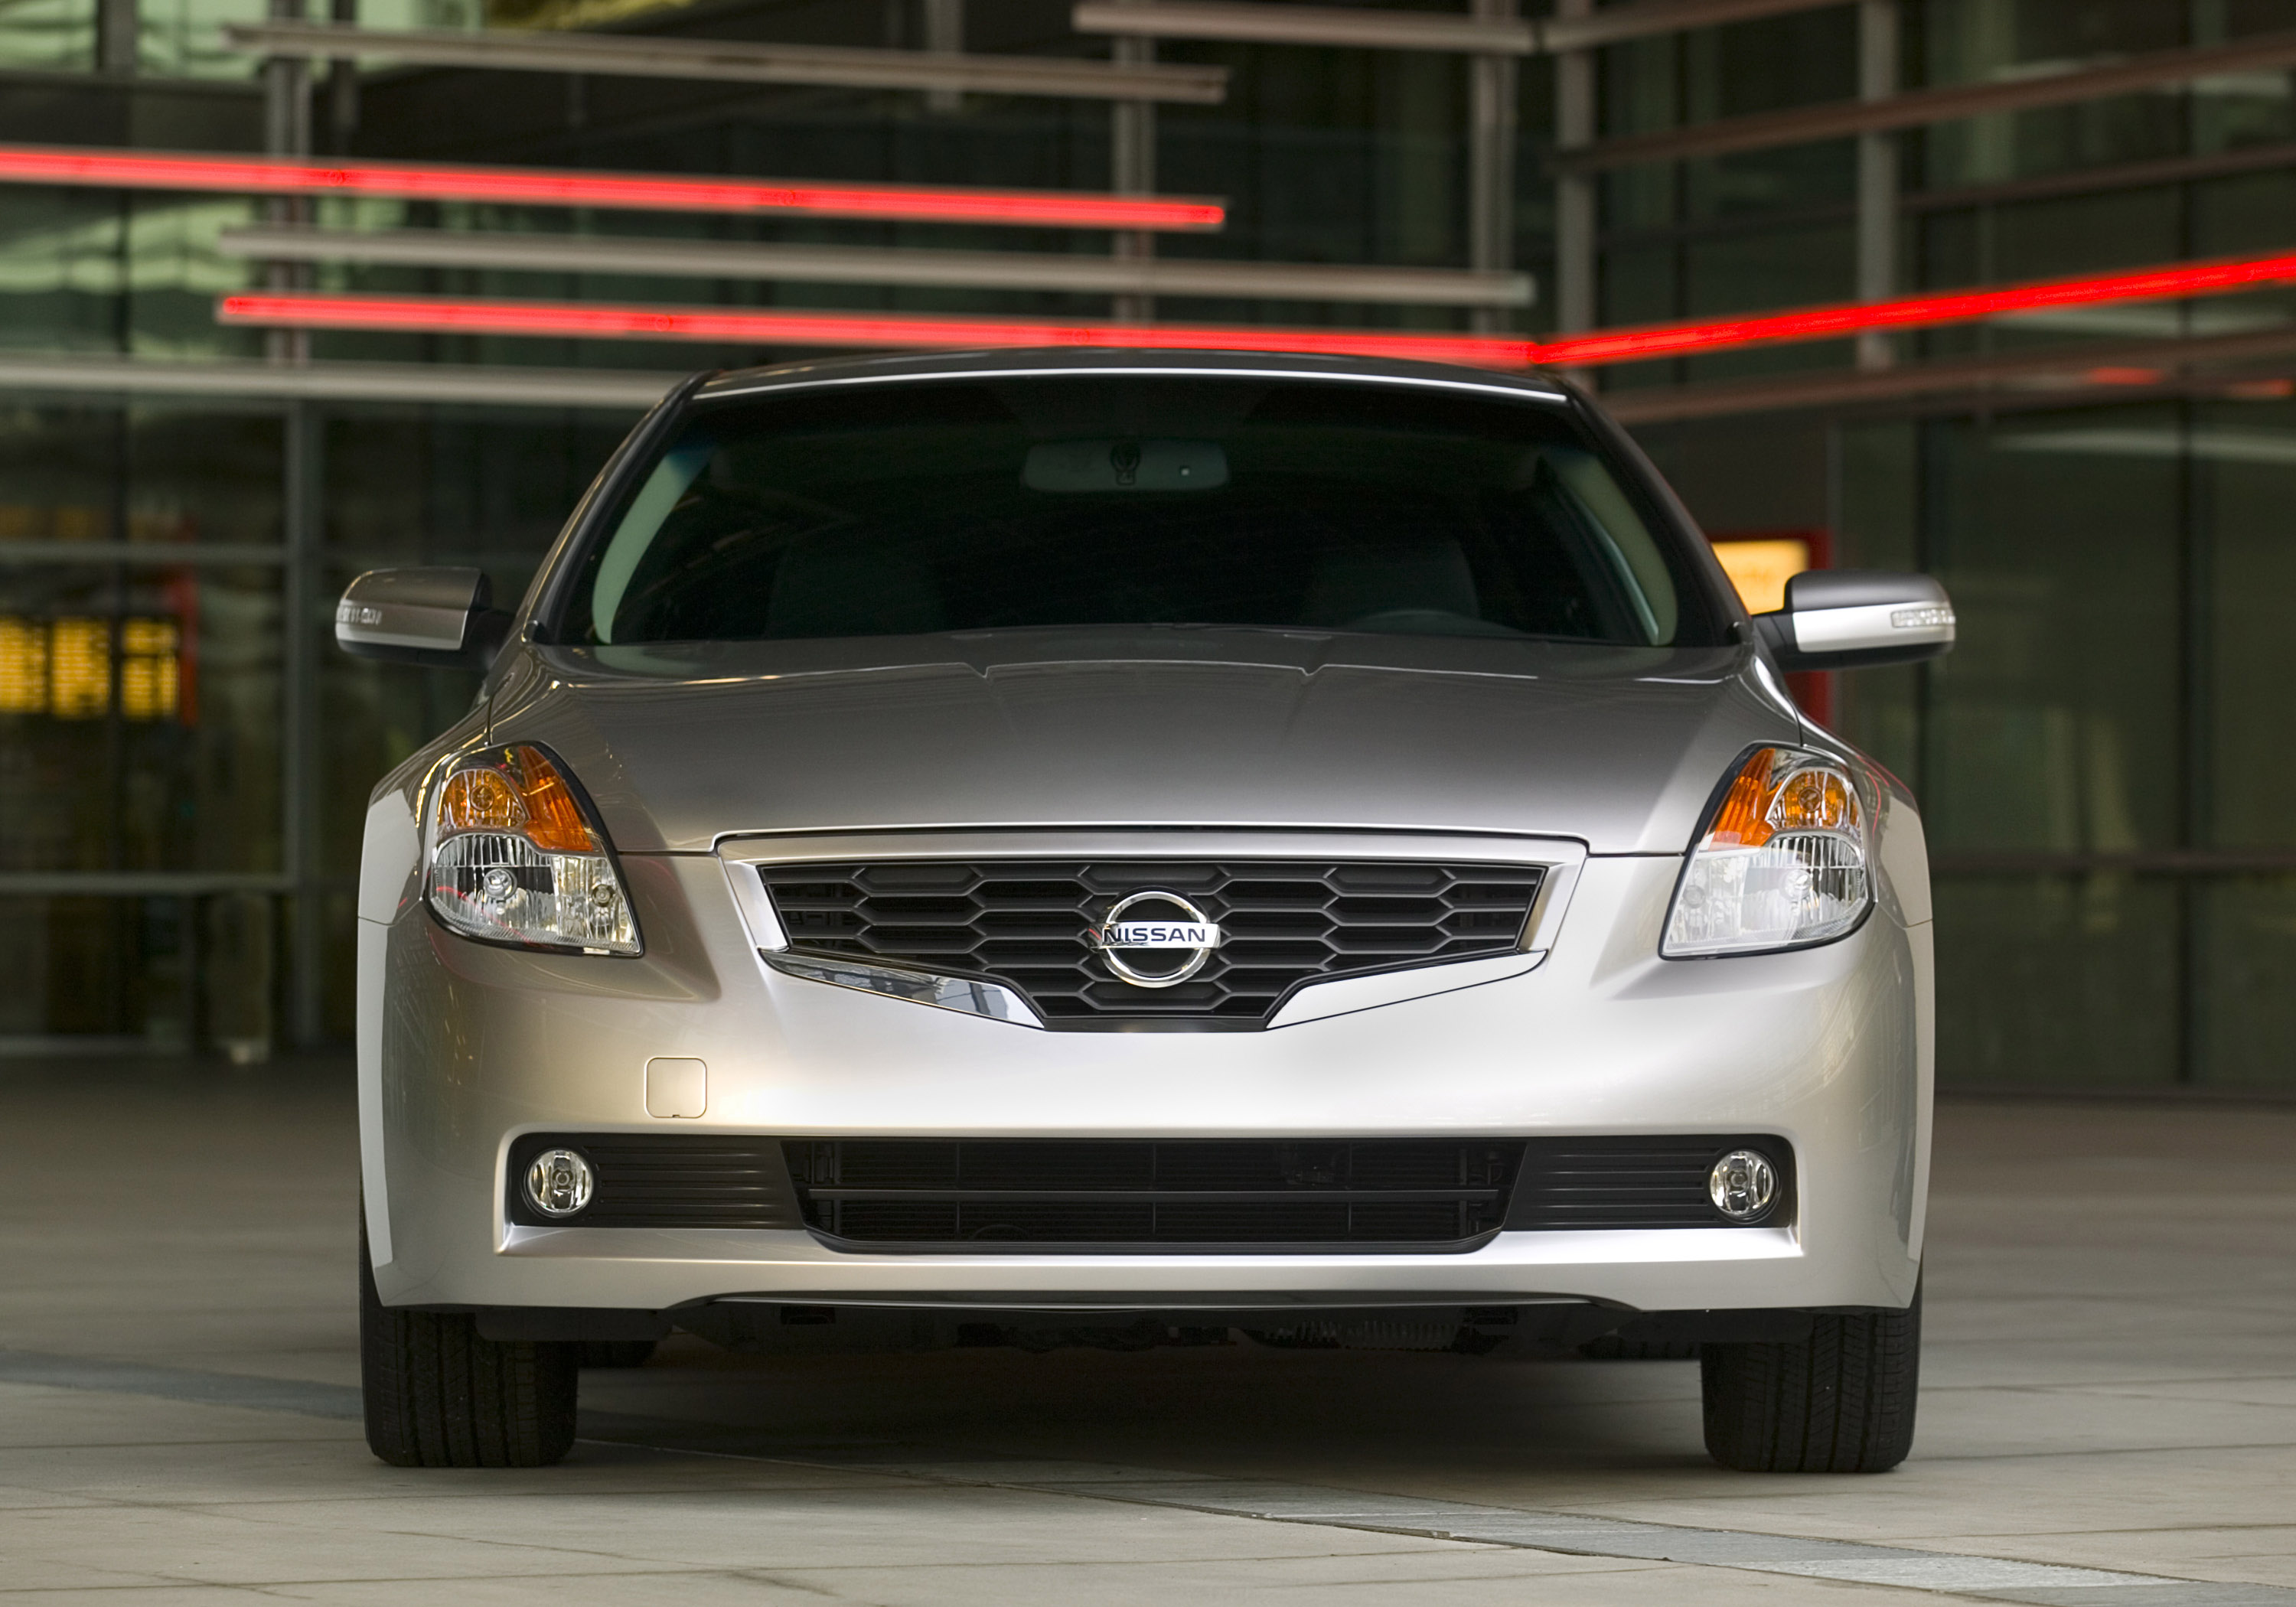 2009 nissan altima coupe demands attention with aggressive styling performance and features. Black Bedroom Furniture Sets. Home Design Ideas